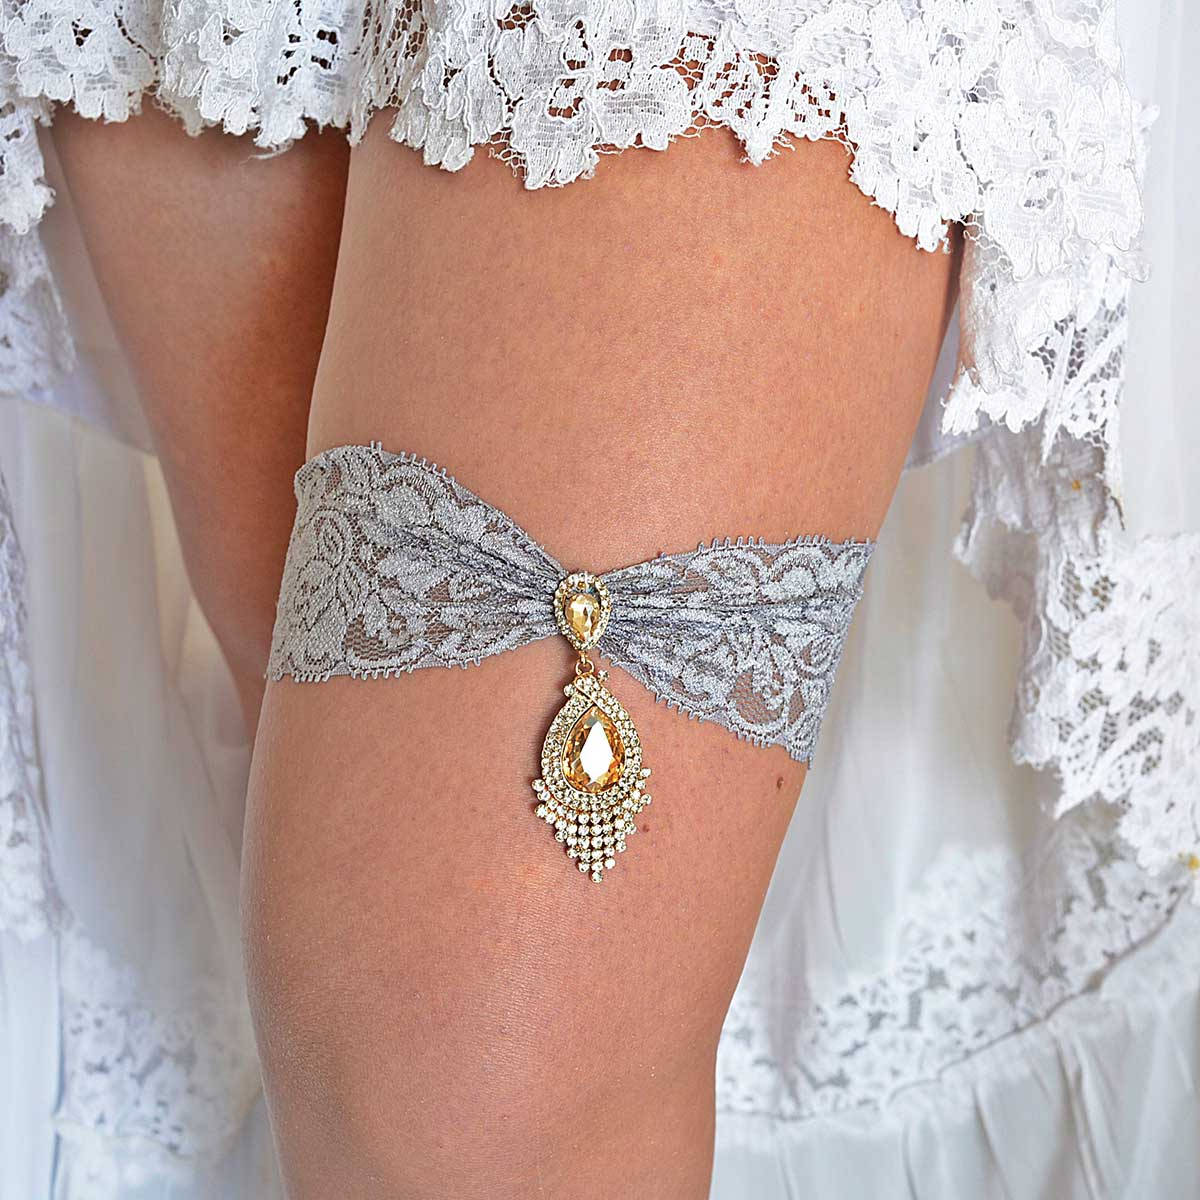 Gray Bridal Garter Set With Gold & Clear Rhinestone - Wedding Garter - SuzannaM Designs